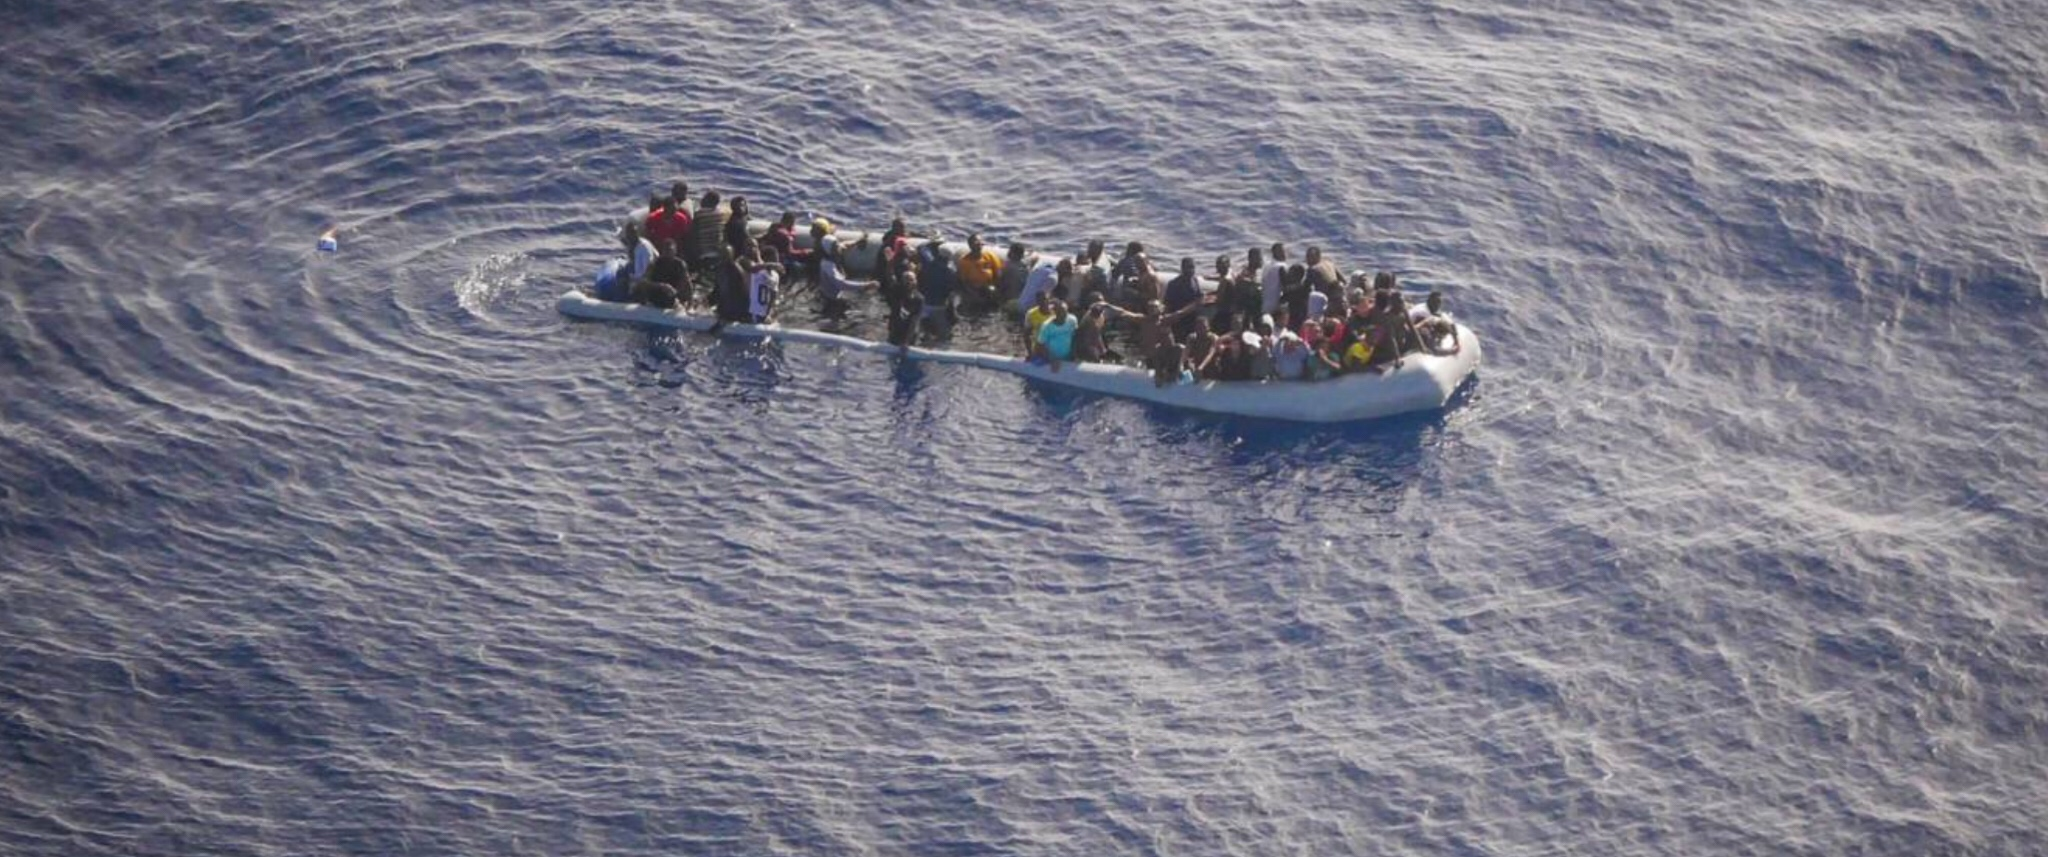 Tripoli-Malta to fight human trafficing